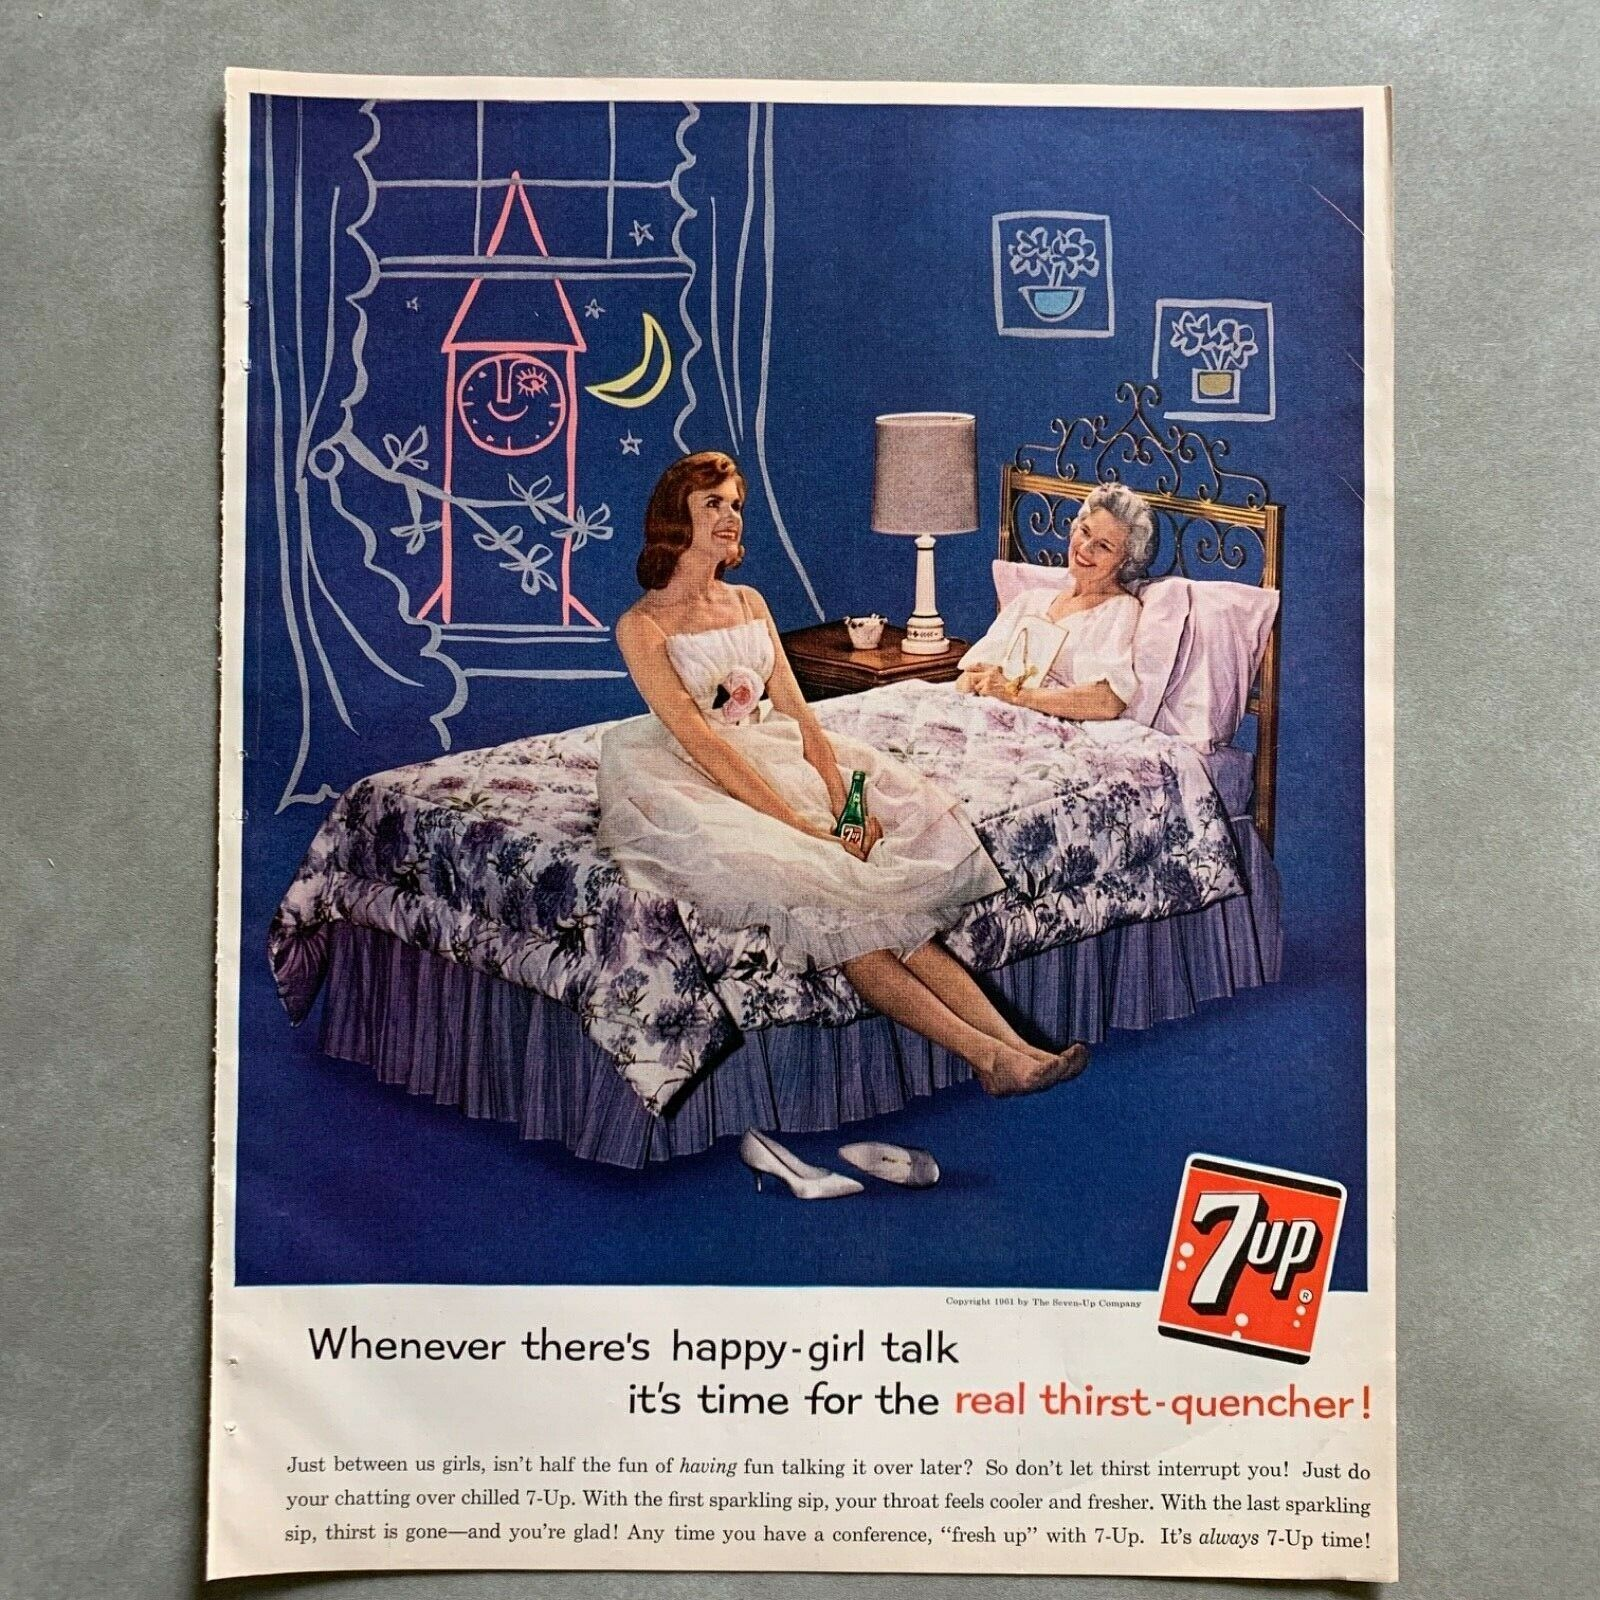 Primary image for Vintage Seven-Up Girl Talk 7up Soda Photo Print Magazine Ad 1961 Thirst Quencher